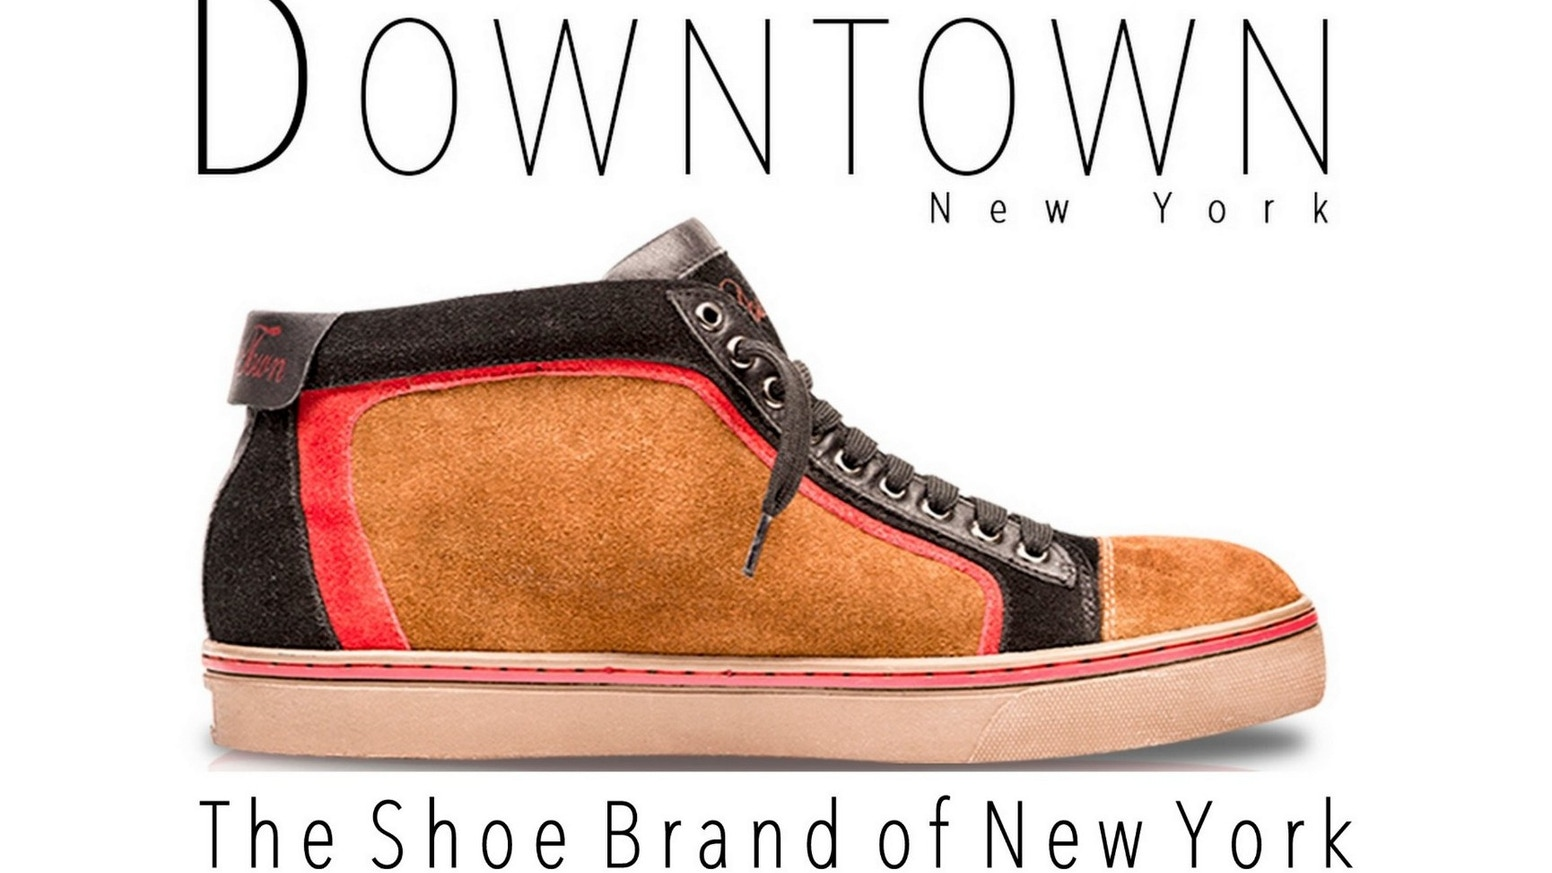 Enjoy walking in Downtown NY day & night wherever you are. Unique bold design, detailed craftsmanship, comfort combined with great style